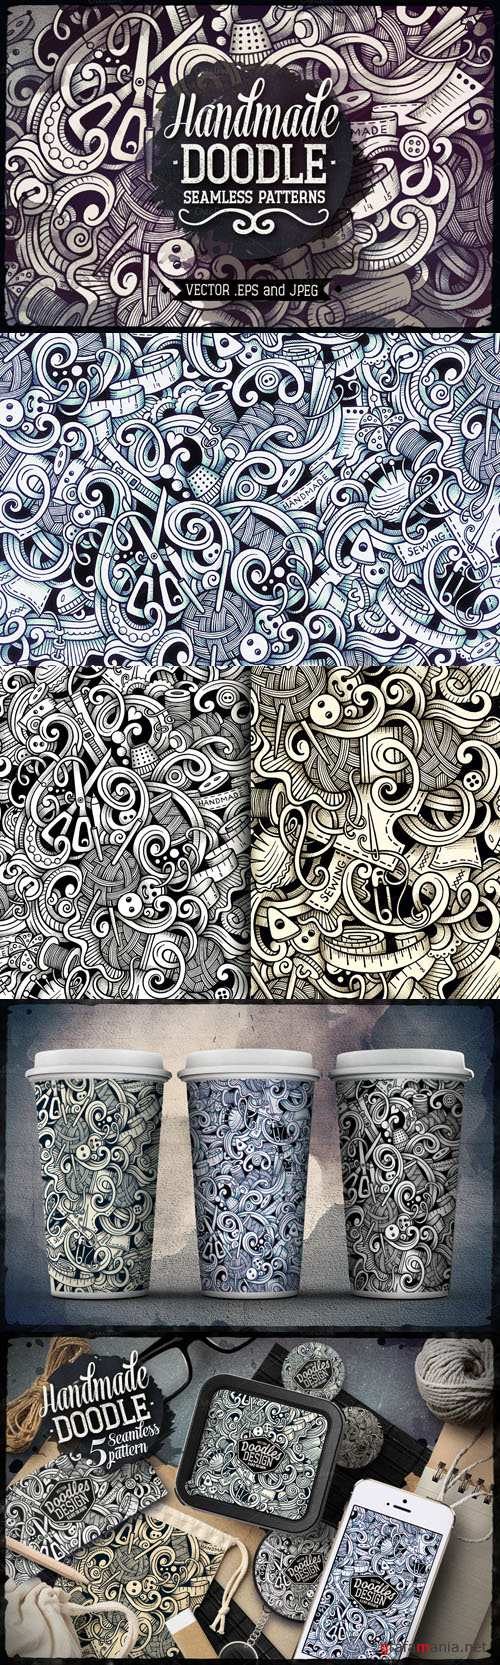 CreativeMarket - 5 Handmade Doodles Patterns 729301